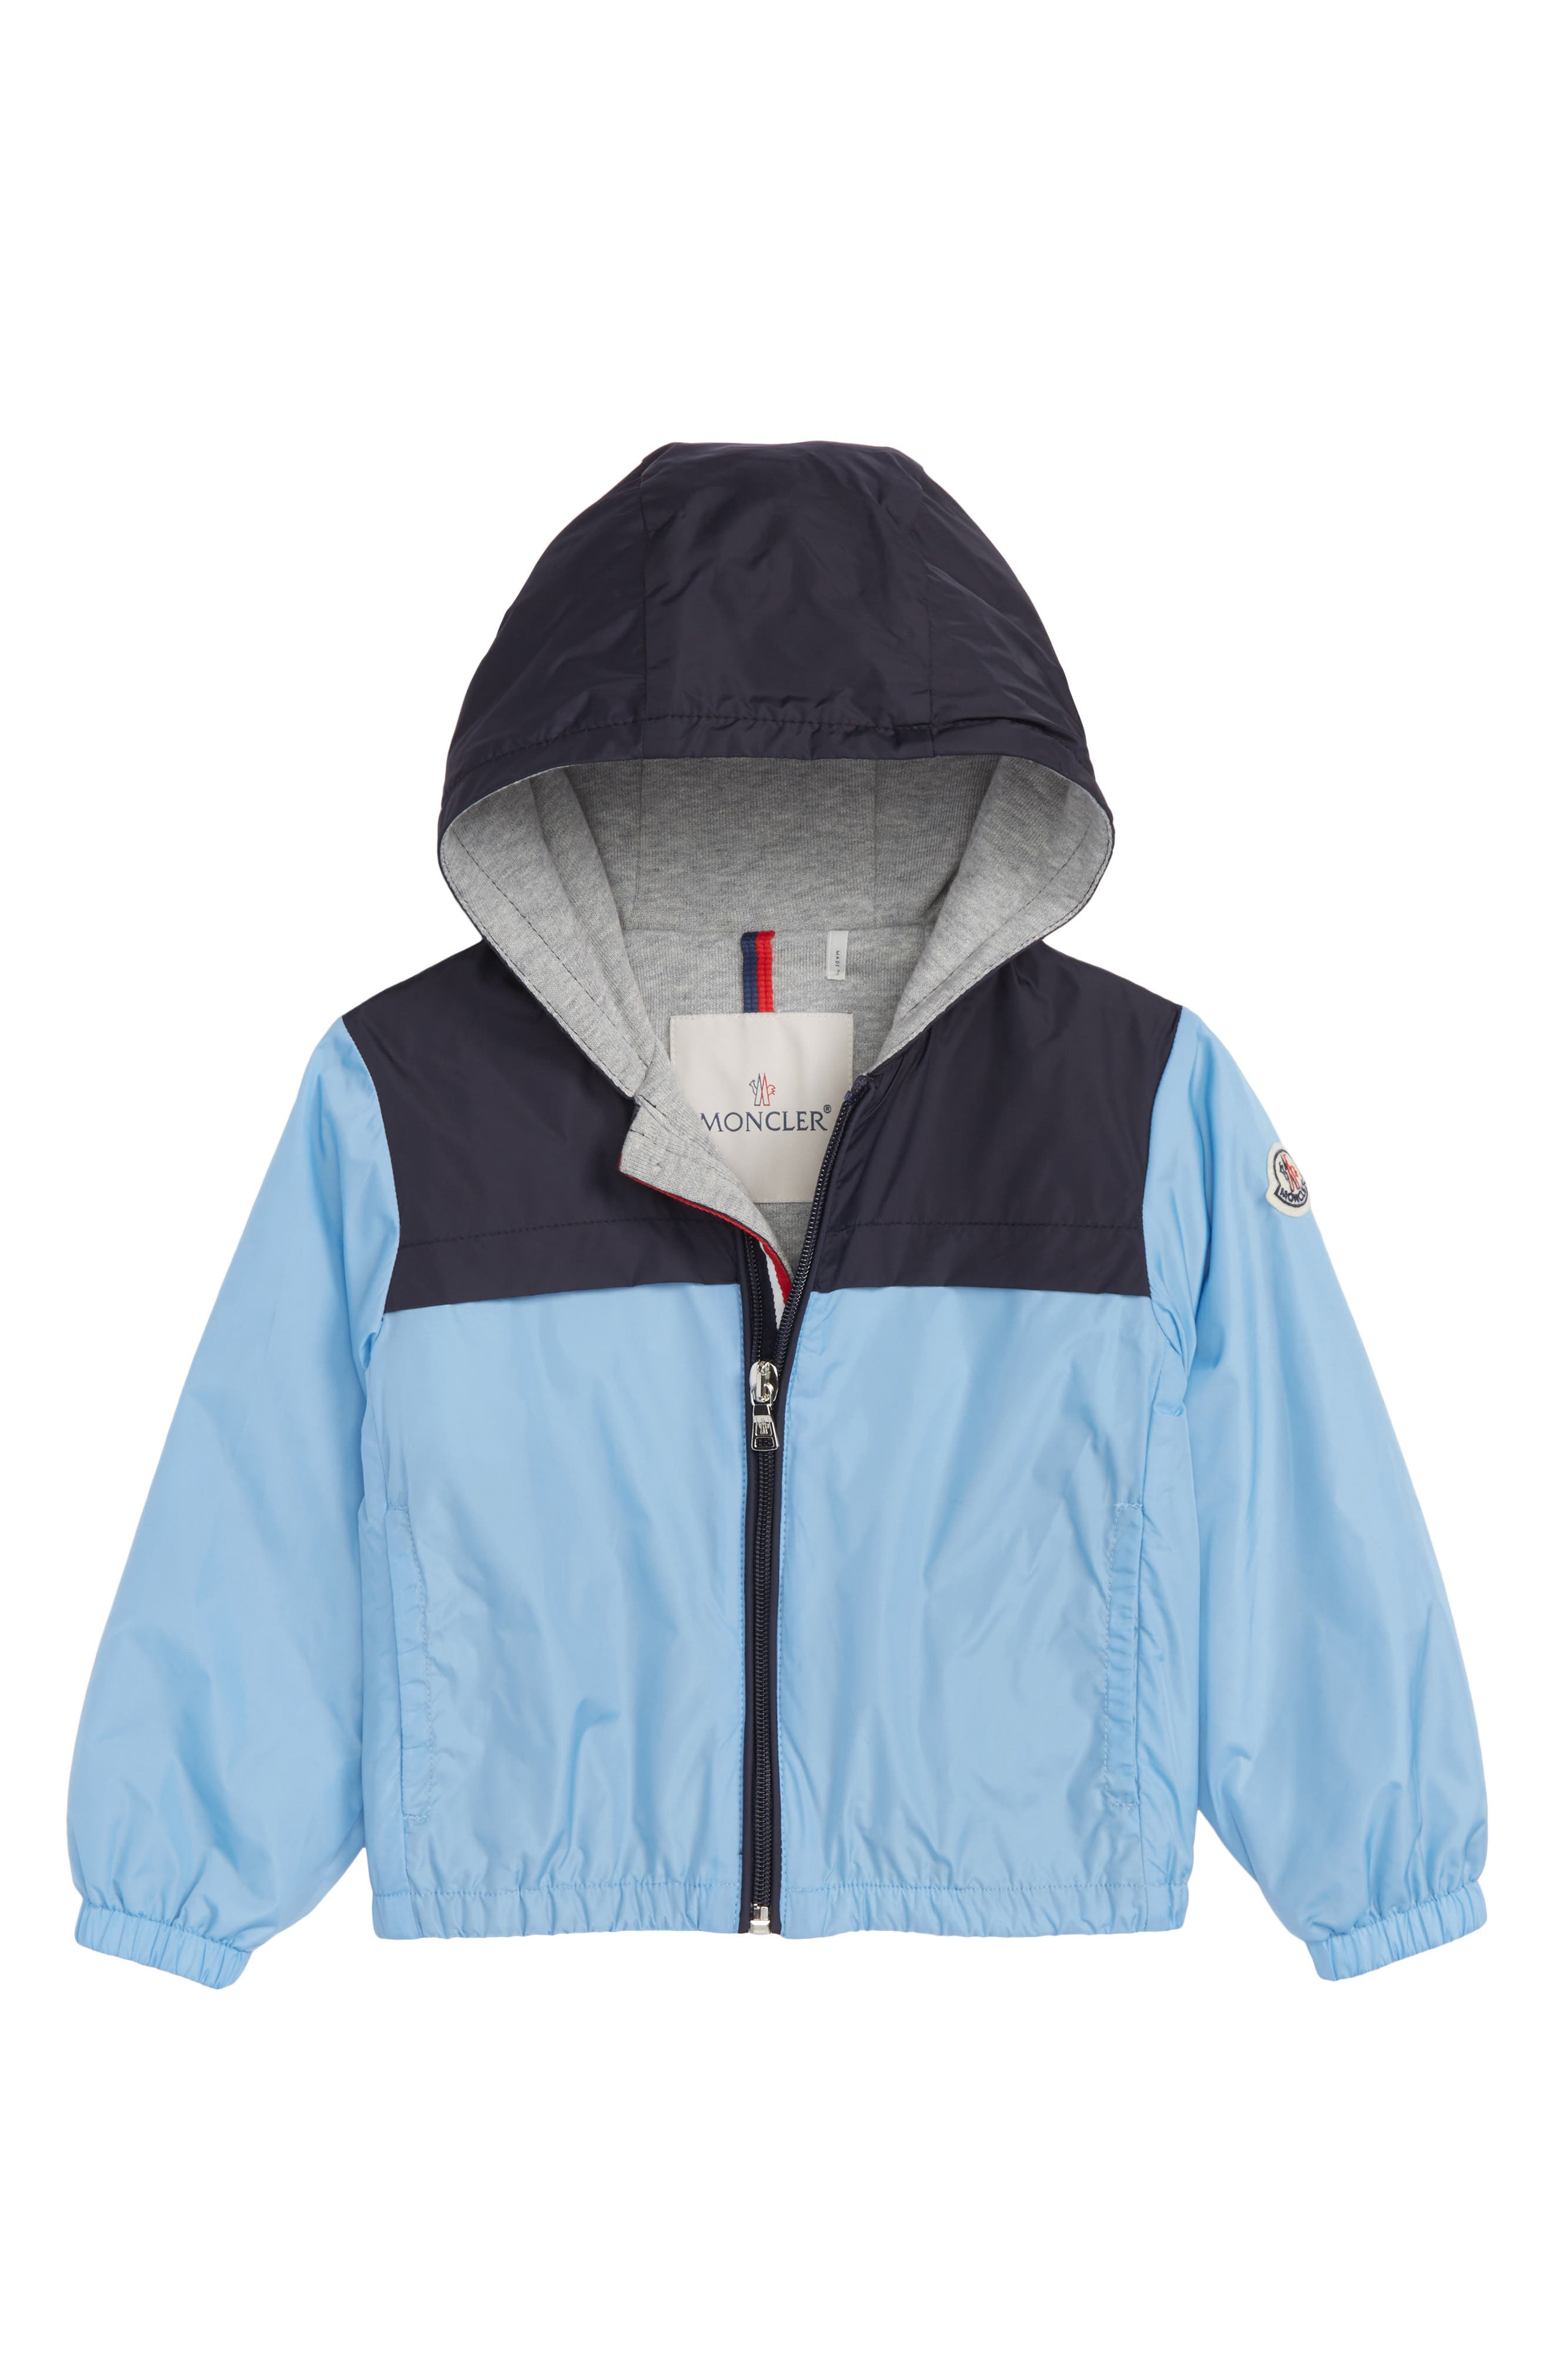 MONCLER, Izon Jersey Lined Hoodie, Main thumbnail 1, color, BLUE/ NAVY